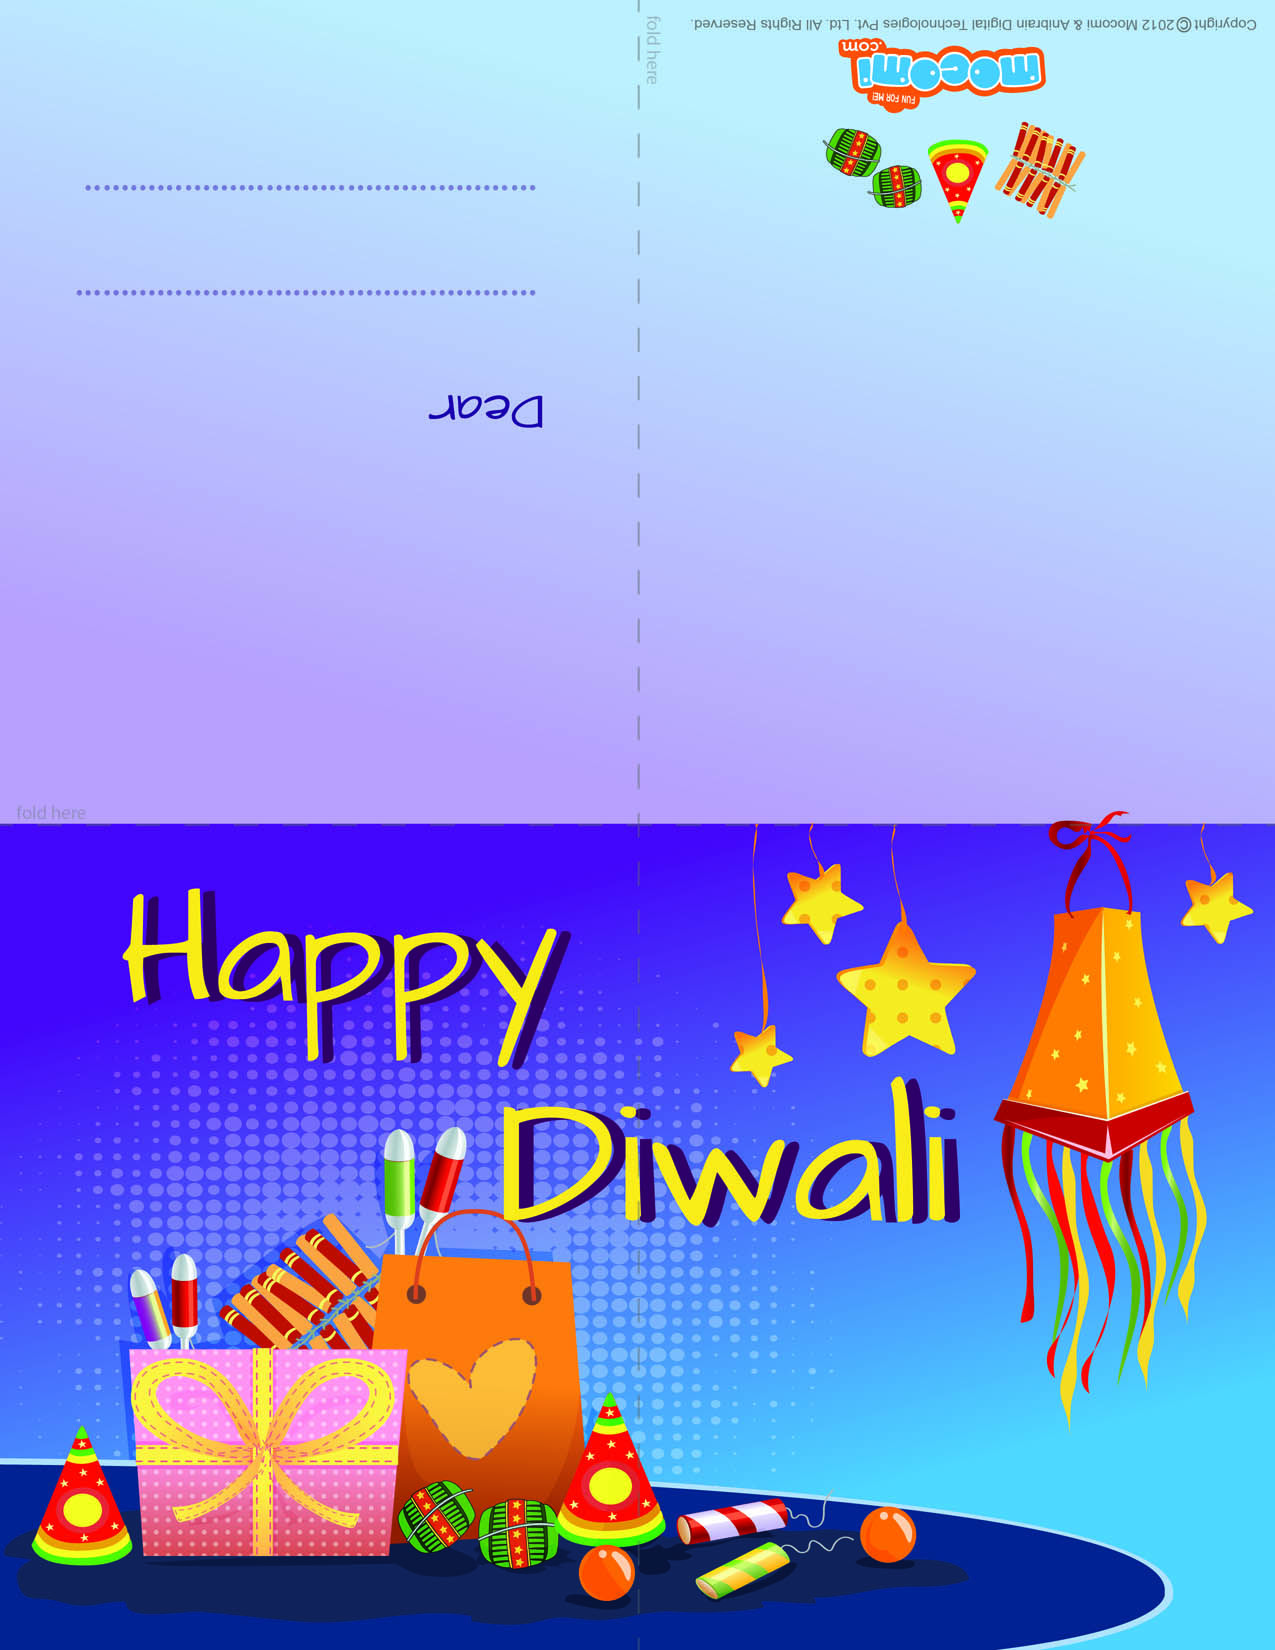 Diwali firecrackers 2 diwali greeting card for kids diwali diwali firecrackers 2 diwali greeting card for kids kristyandbryce Choice Image